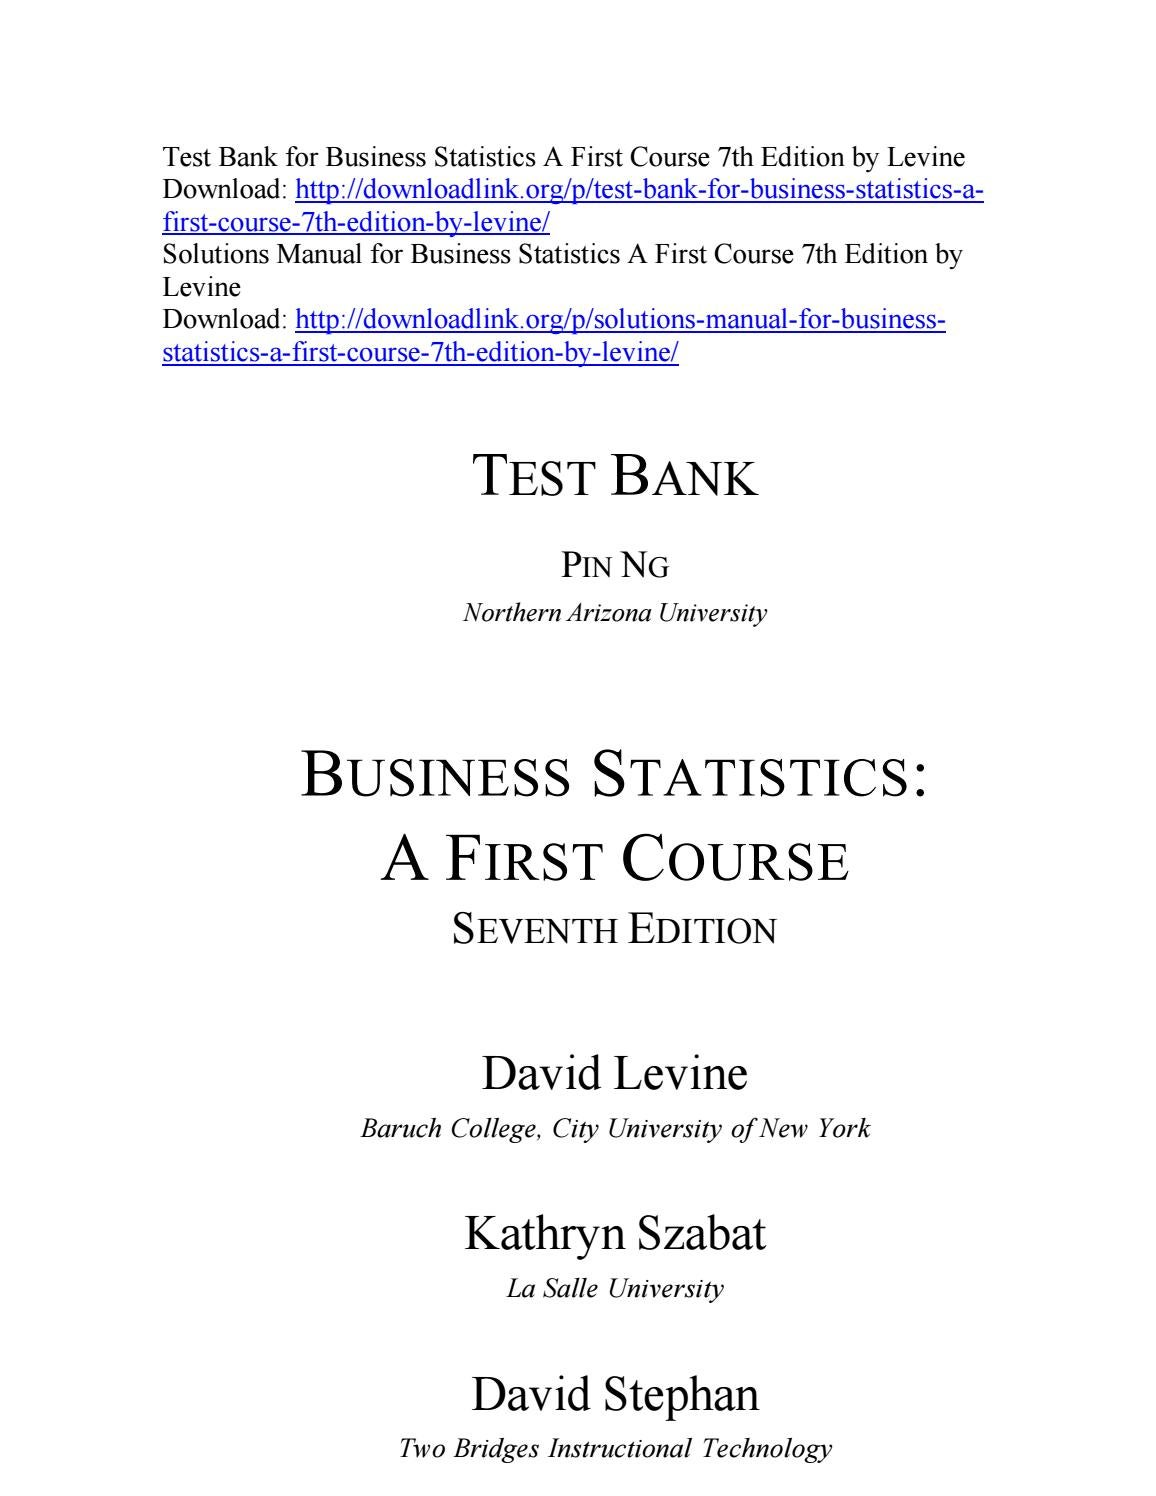 Test Bank for Business Statistics A First Course 7th Edition by Levine by  ys099 - issuu